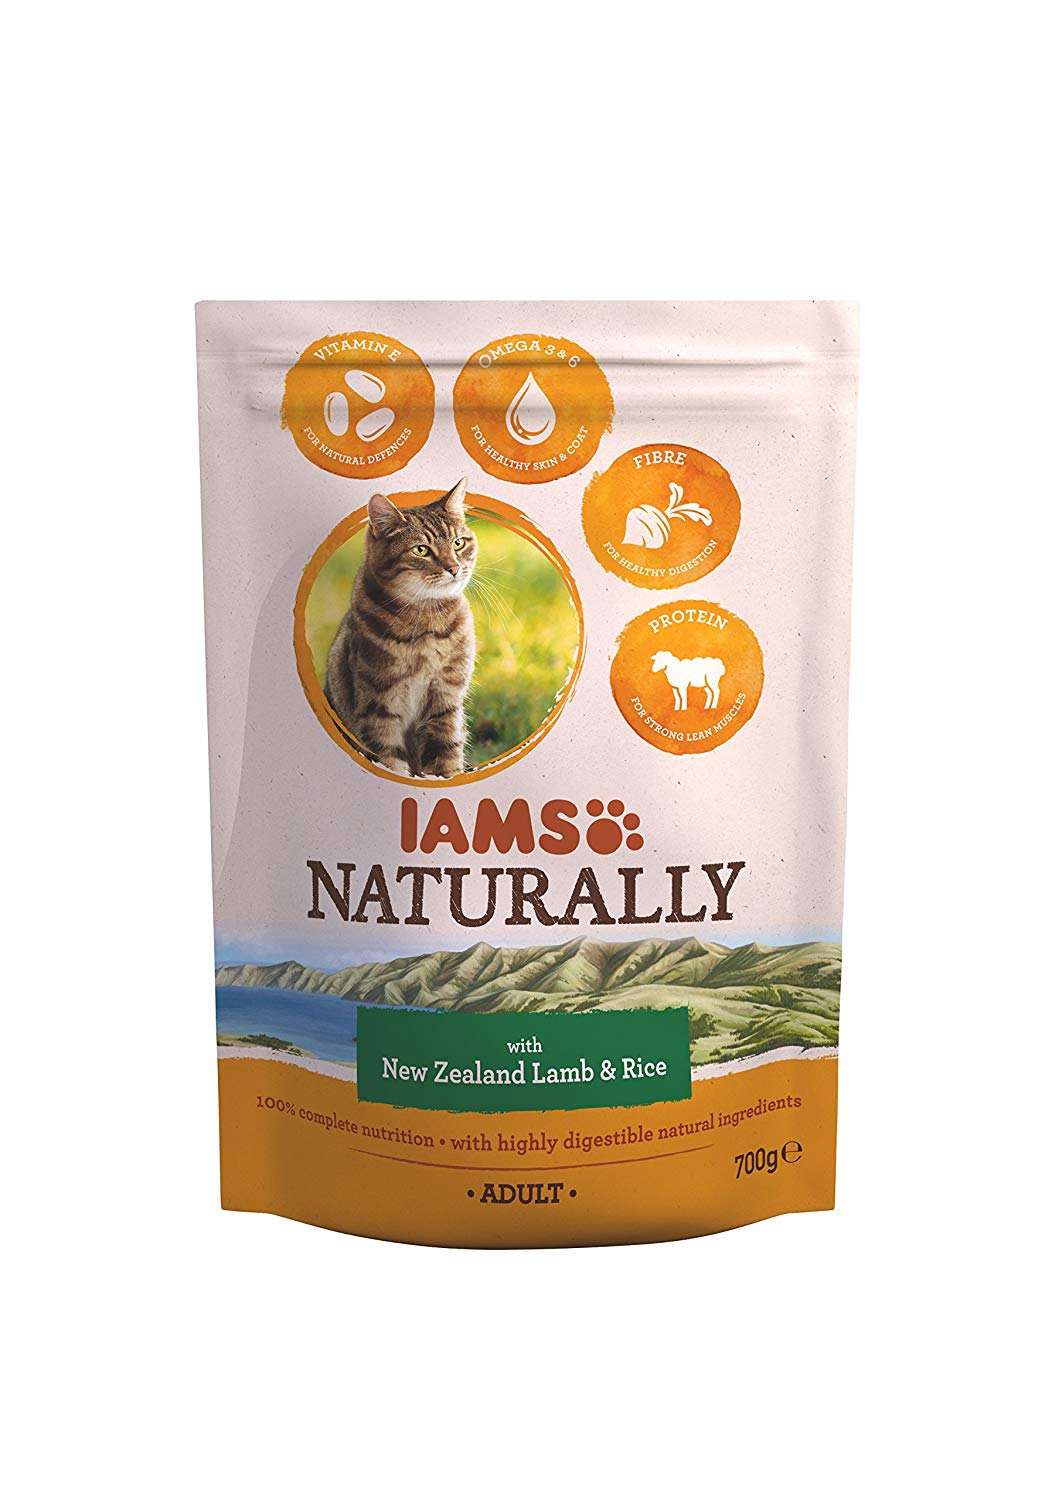 New Zealand Lamb and Rice Adult Cat Food, 700 g – Pack of 5